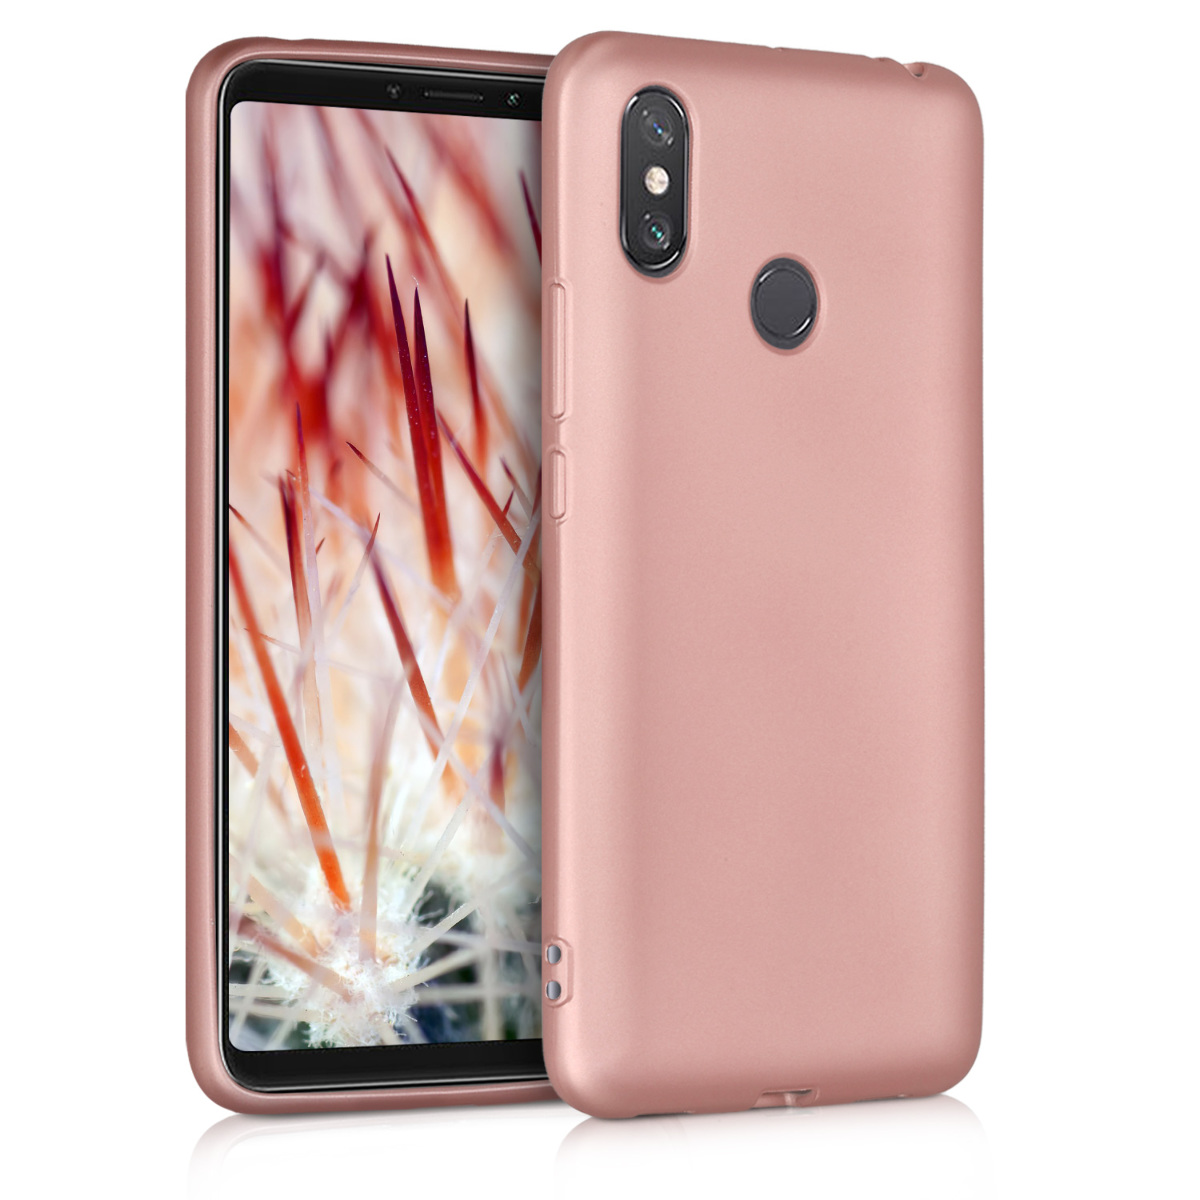 KW Θήκη Σιλικόνης Xiaomi Mi Max 3 - Metallic Rose Gold (46501.31)